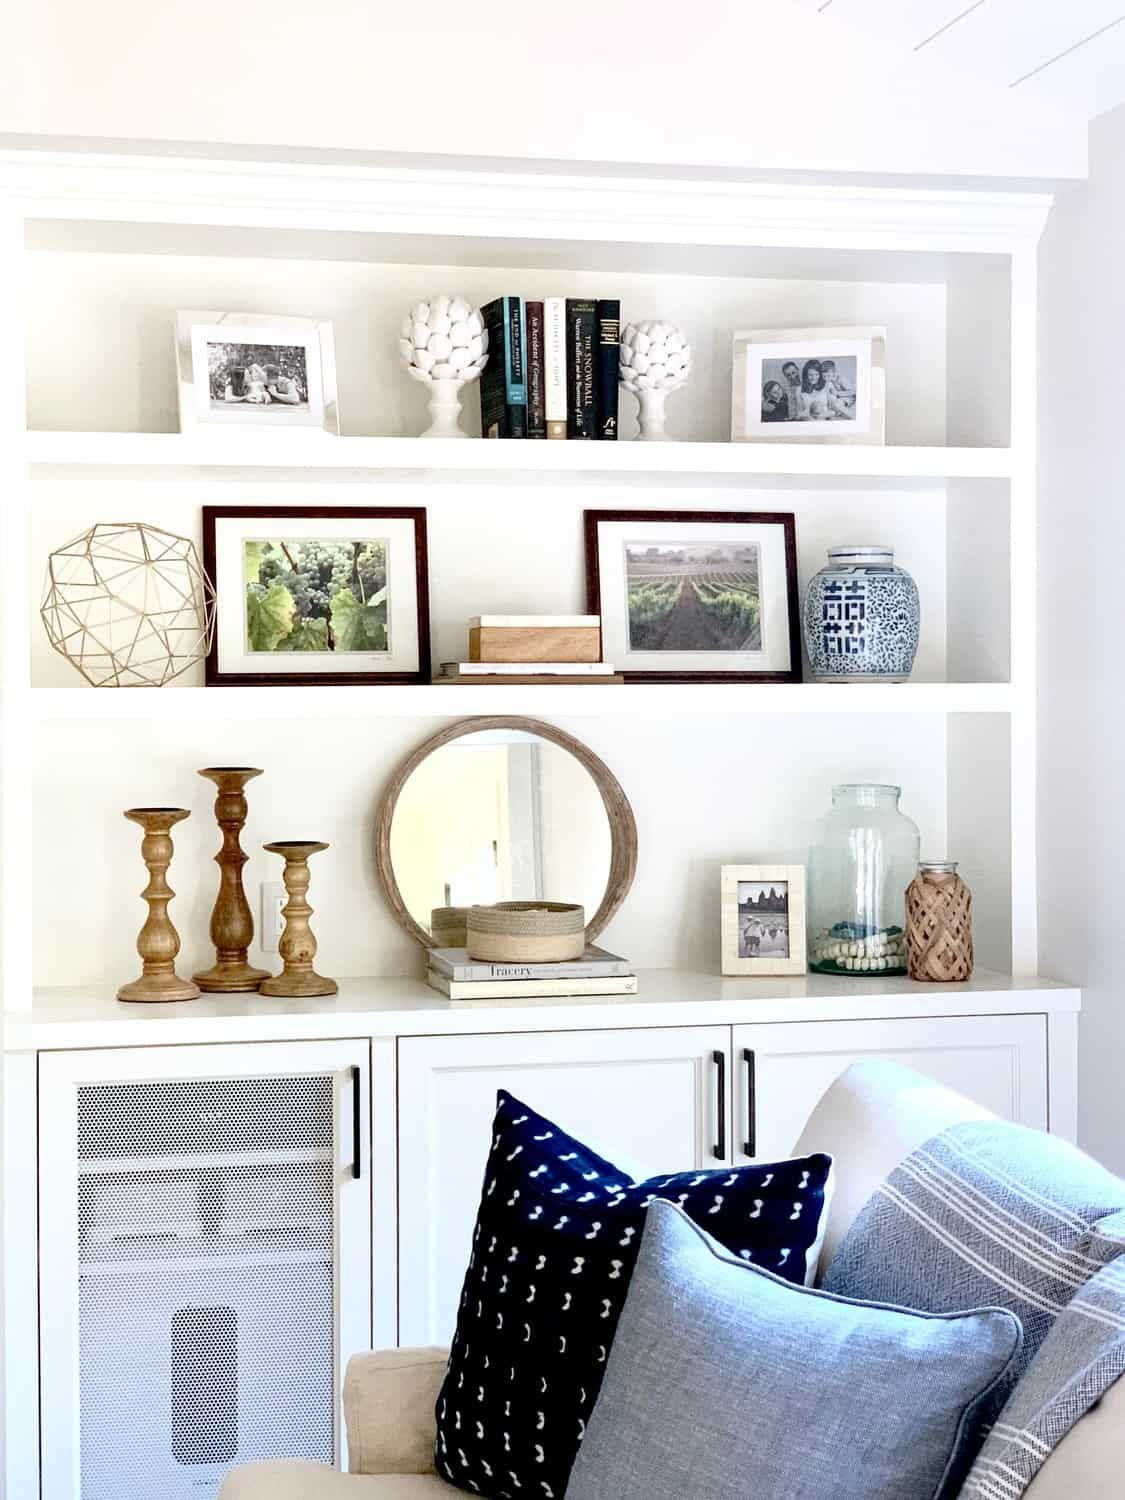 Step By Step BOOKSHELF Styling Tips Before and After - Bookshelves in living room, Shelf decor living room, Living room shelves, Built in shelves living room, Home decor styles, Decorating bookshelves - Recently, I went over to style my client's newly built living room bookcases  Here are my five bookshelf styling tips! 1  Empty all the shelves